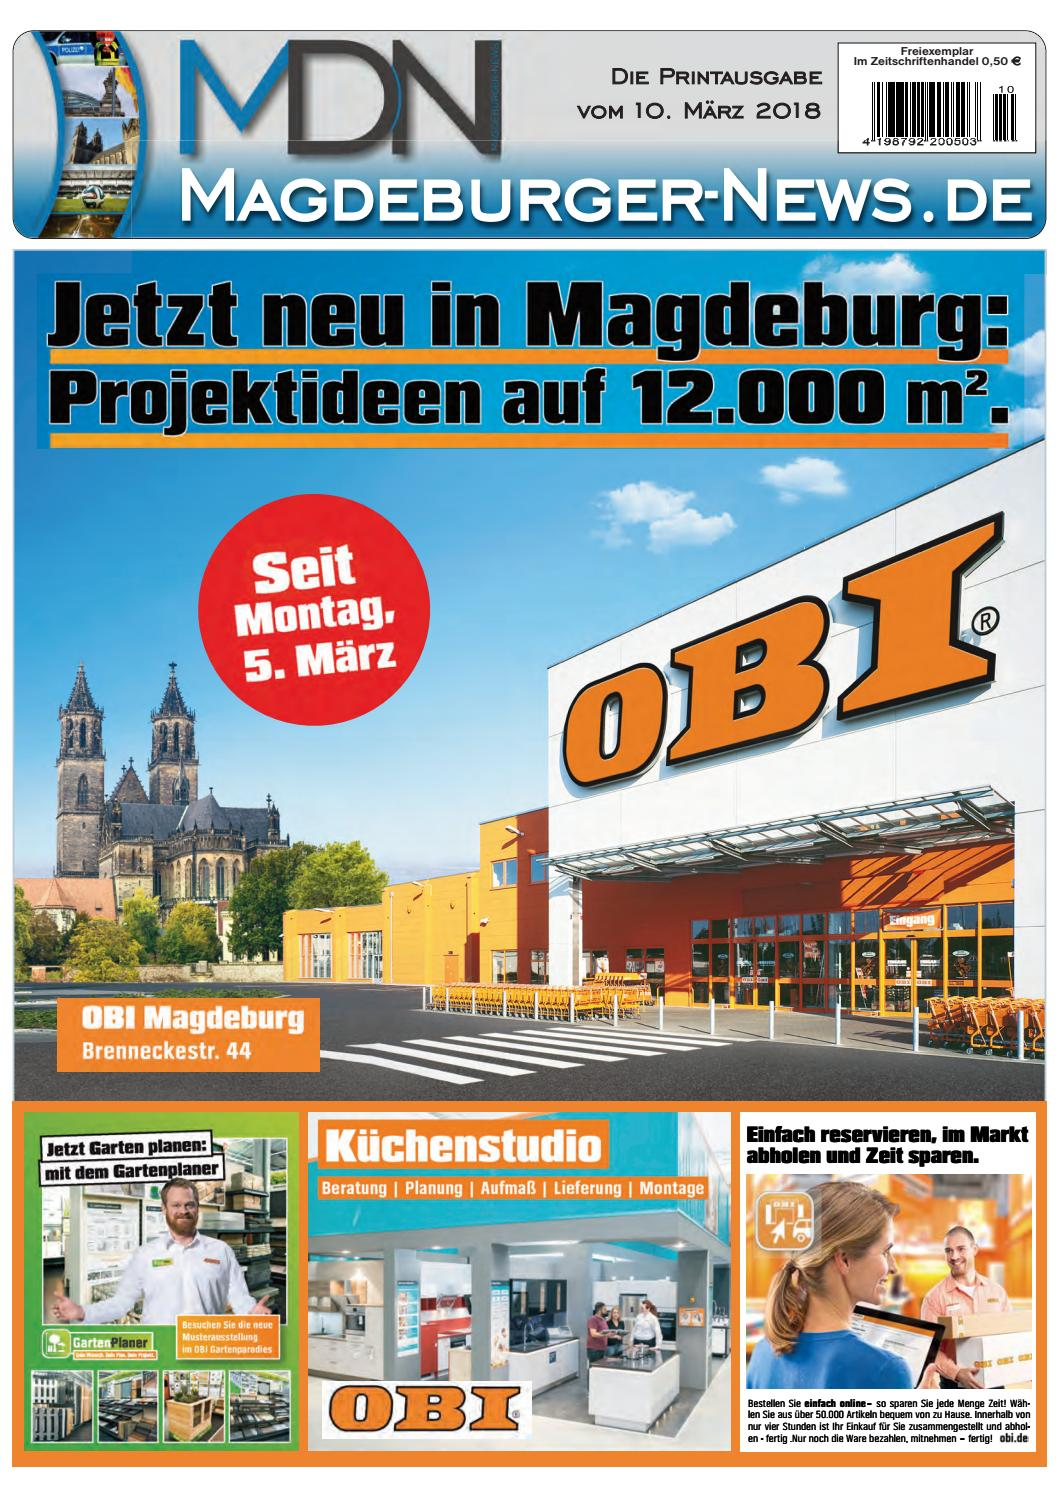 147d8bd0c406e7 MAGDEBURGER-NEWS.DE by mdnews18 - issuu